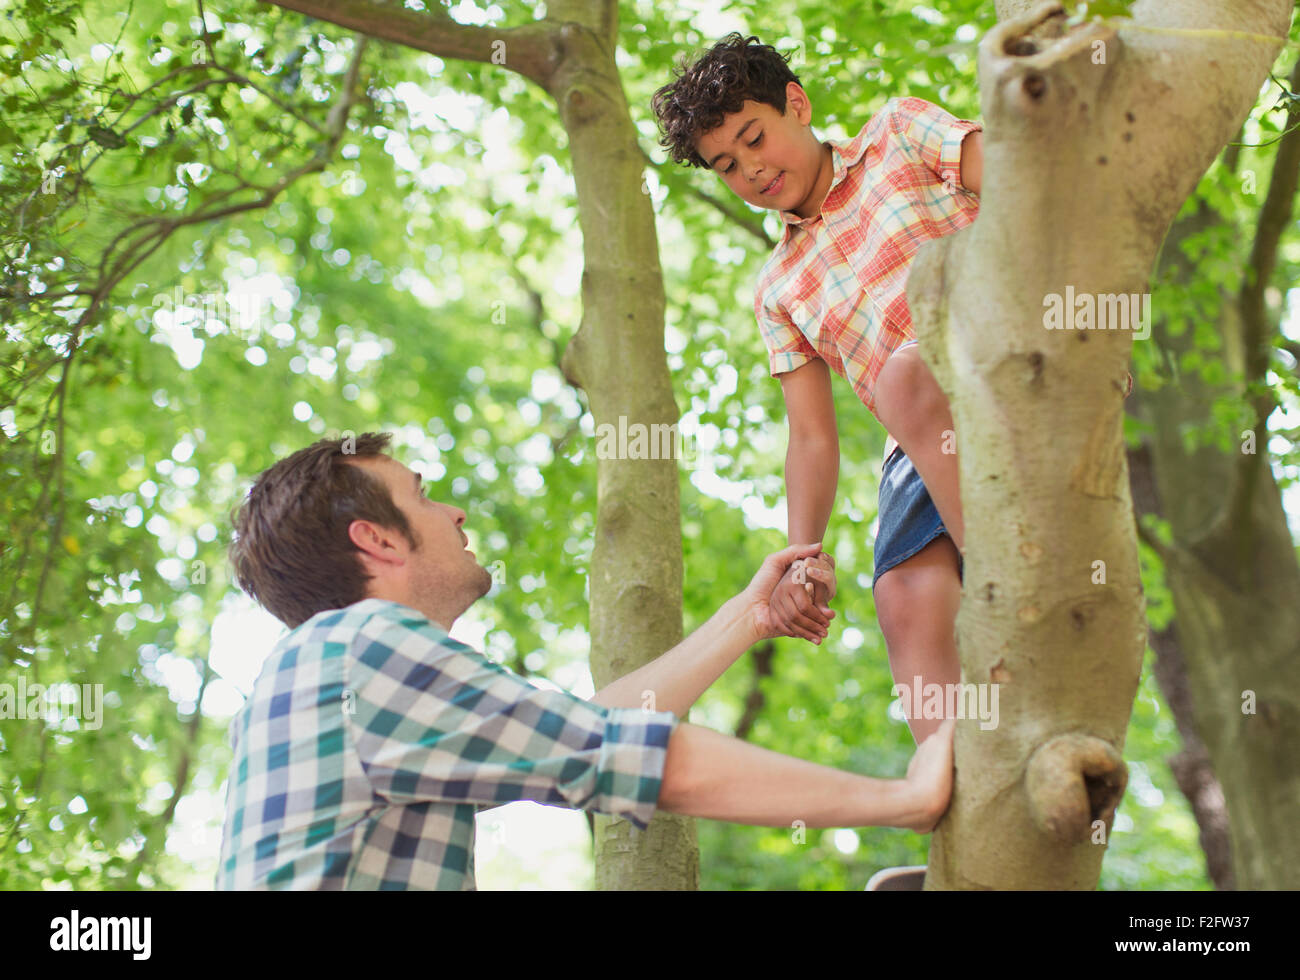 Father helping son climbing tree - Stock Image